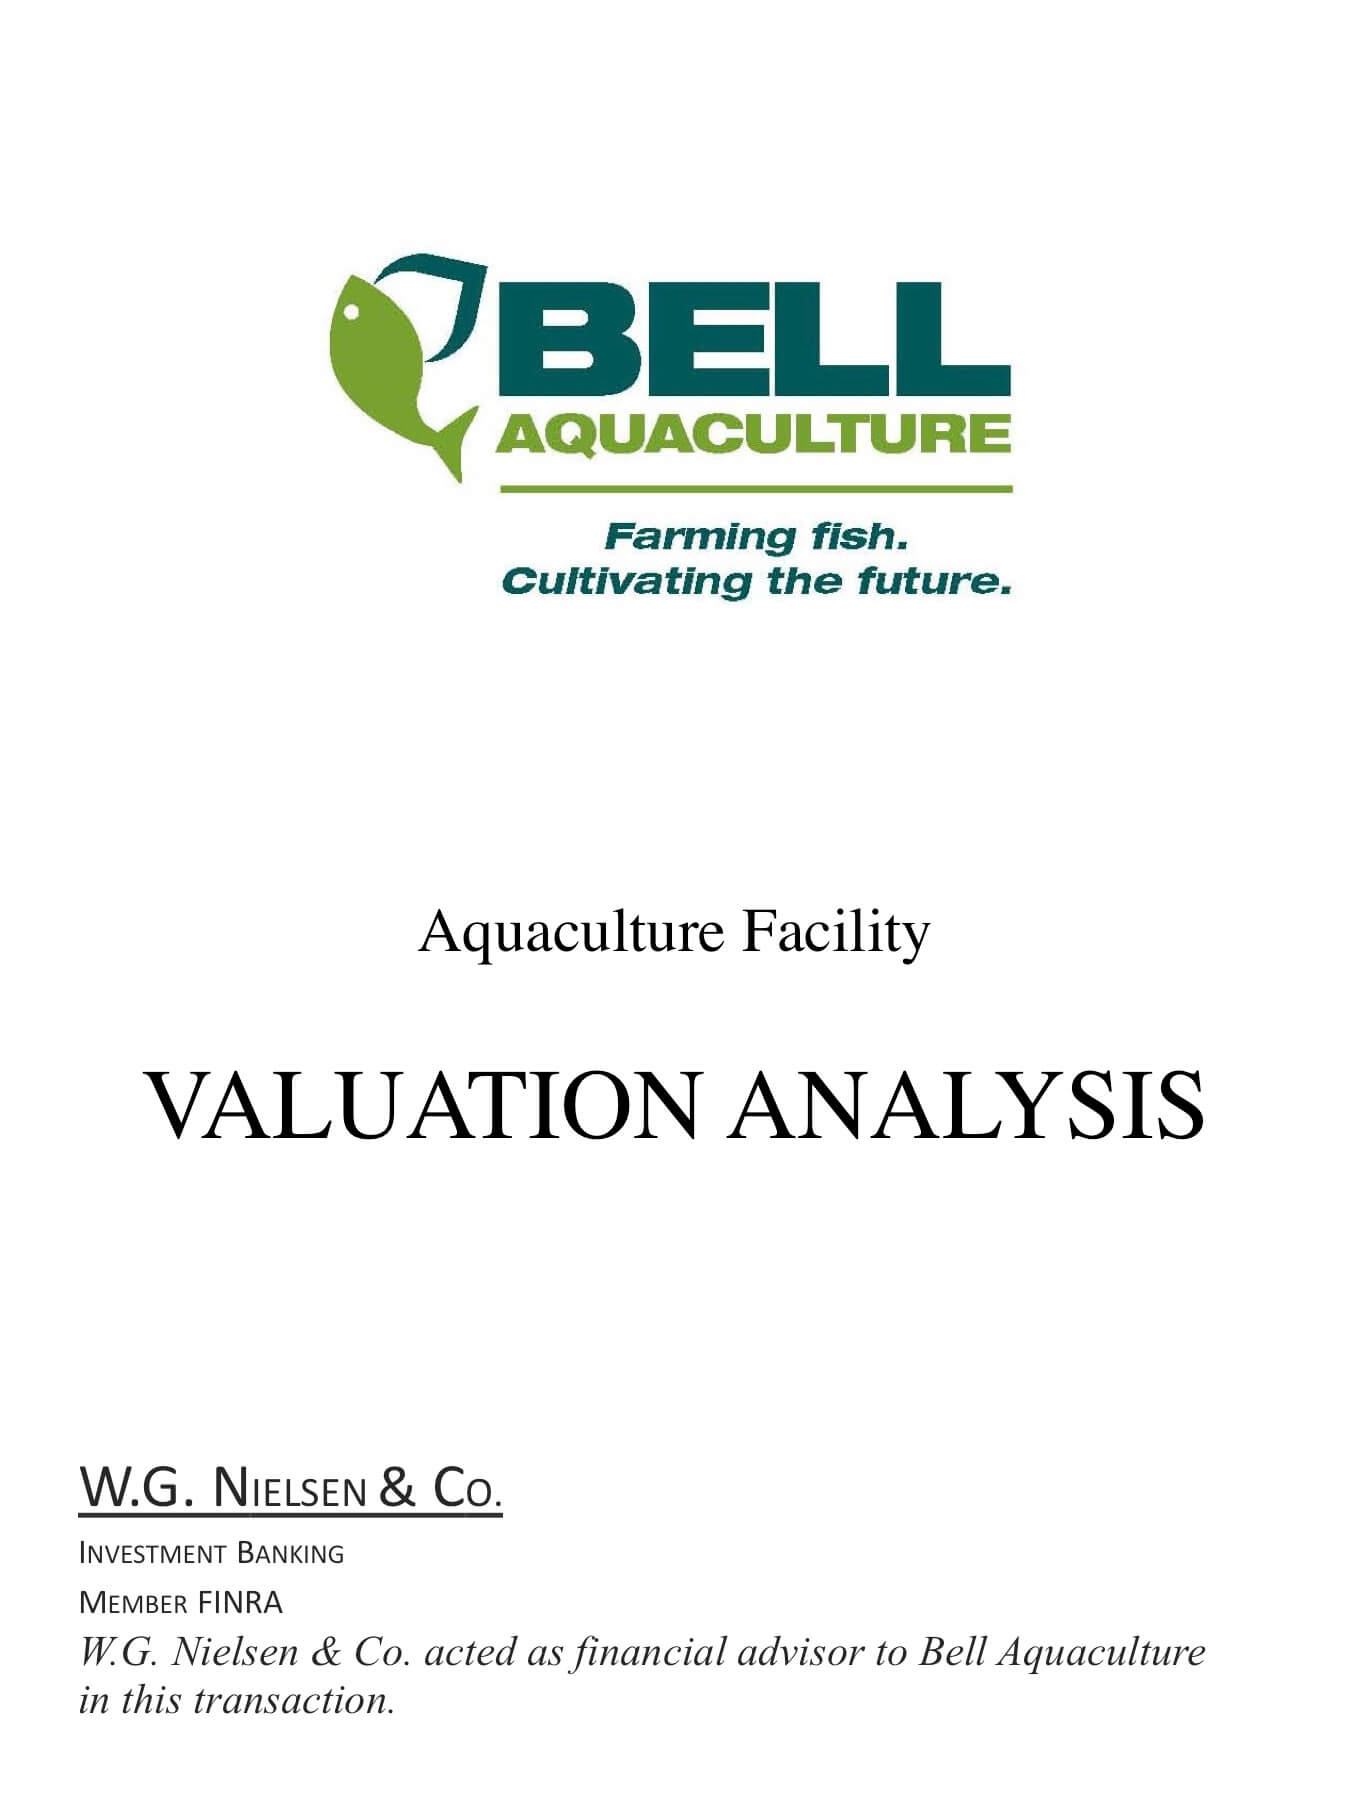 bell aquaculture 2 investment banking transaction